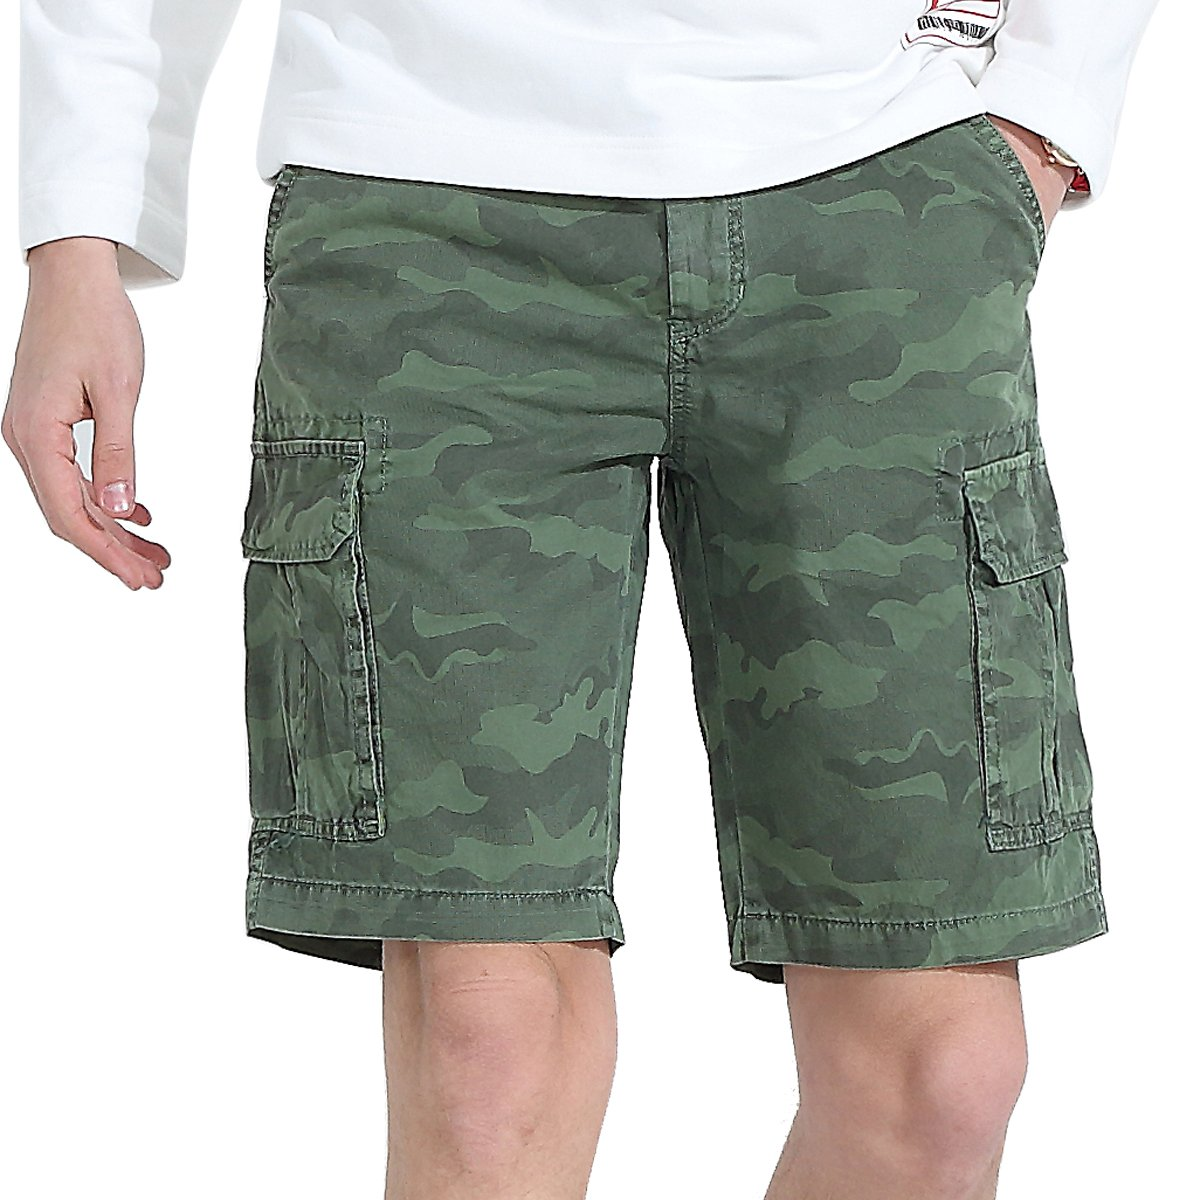 Mens Cargo Shorts Casual Work Tactical Camo Cotton Classic Big and Tall Outdoor Wear Army Workout Multi Pocket Relaxed Loose Fit Lightweight Urban Pants (Green, 36)